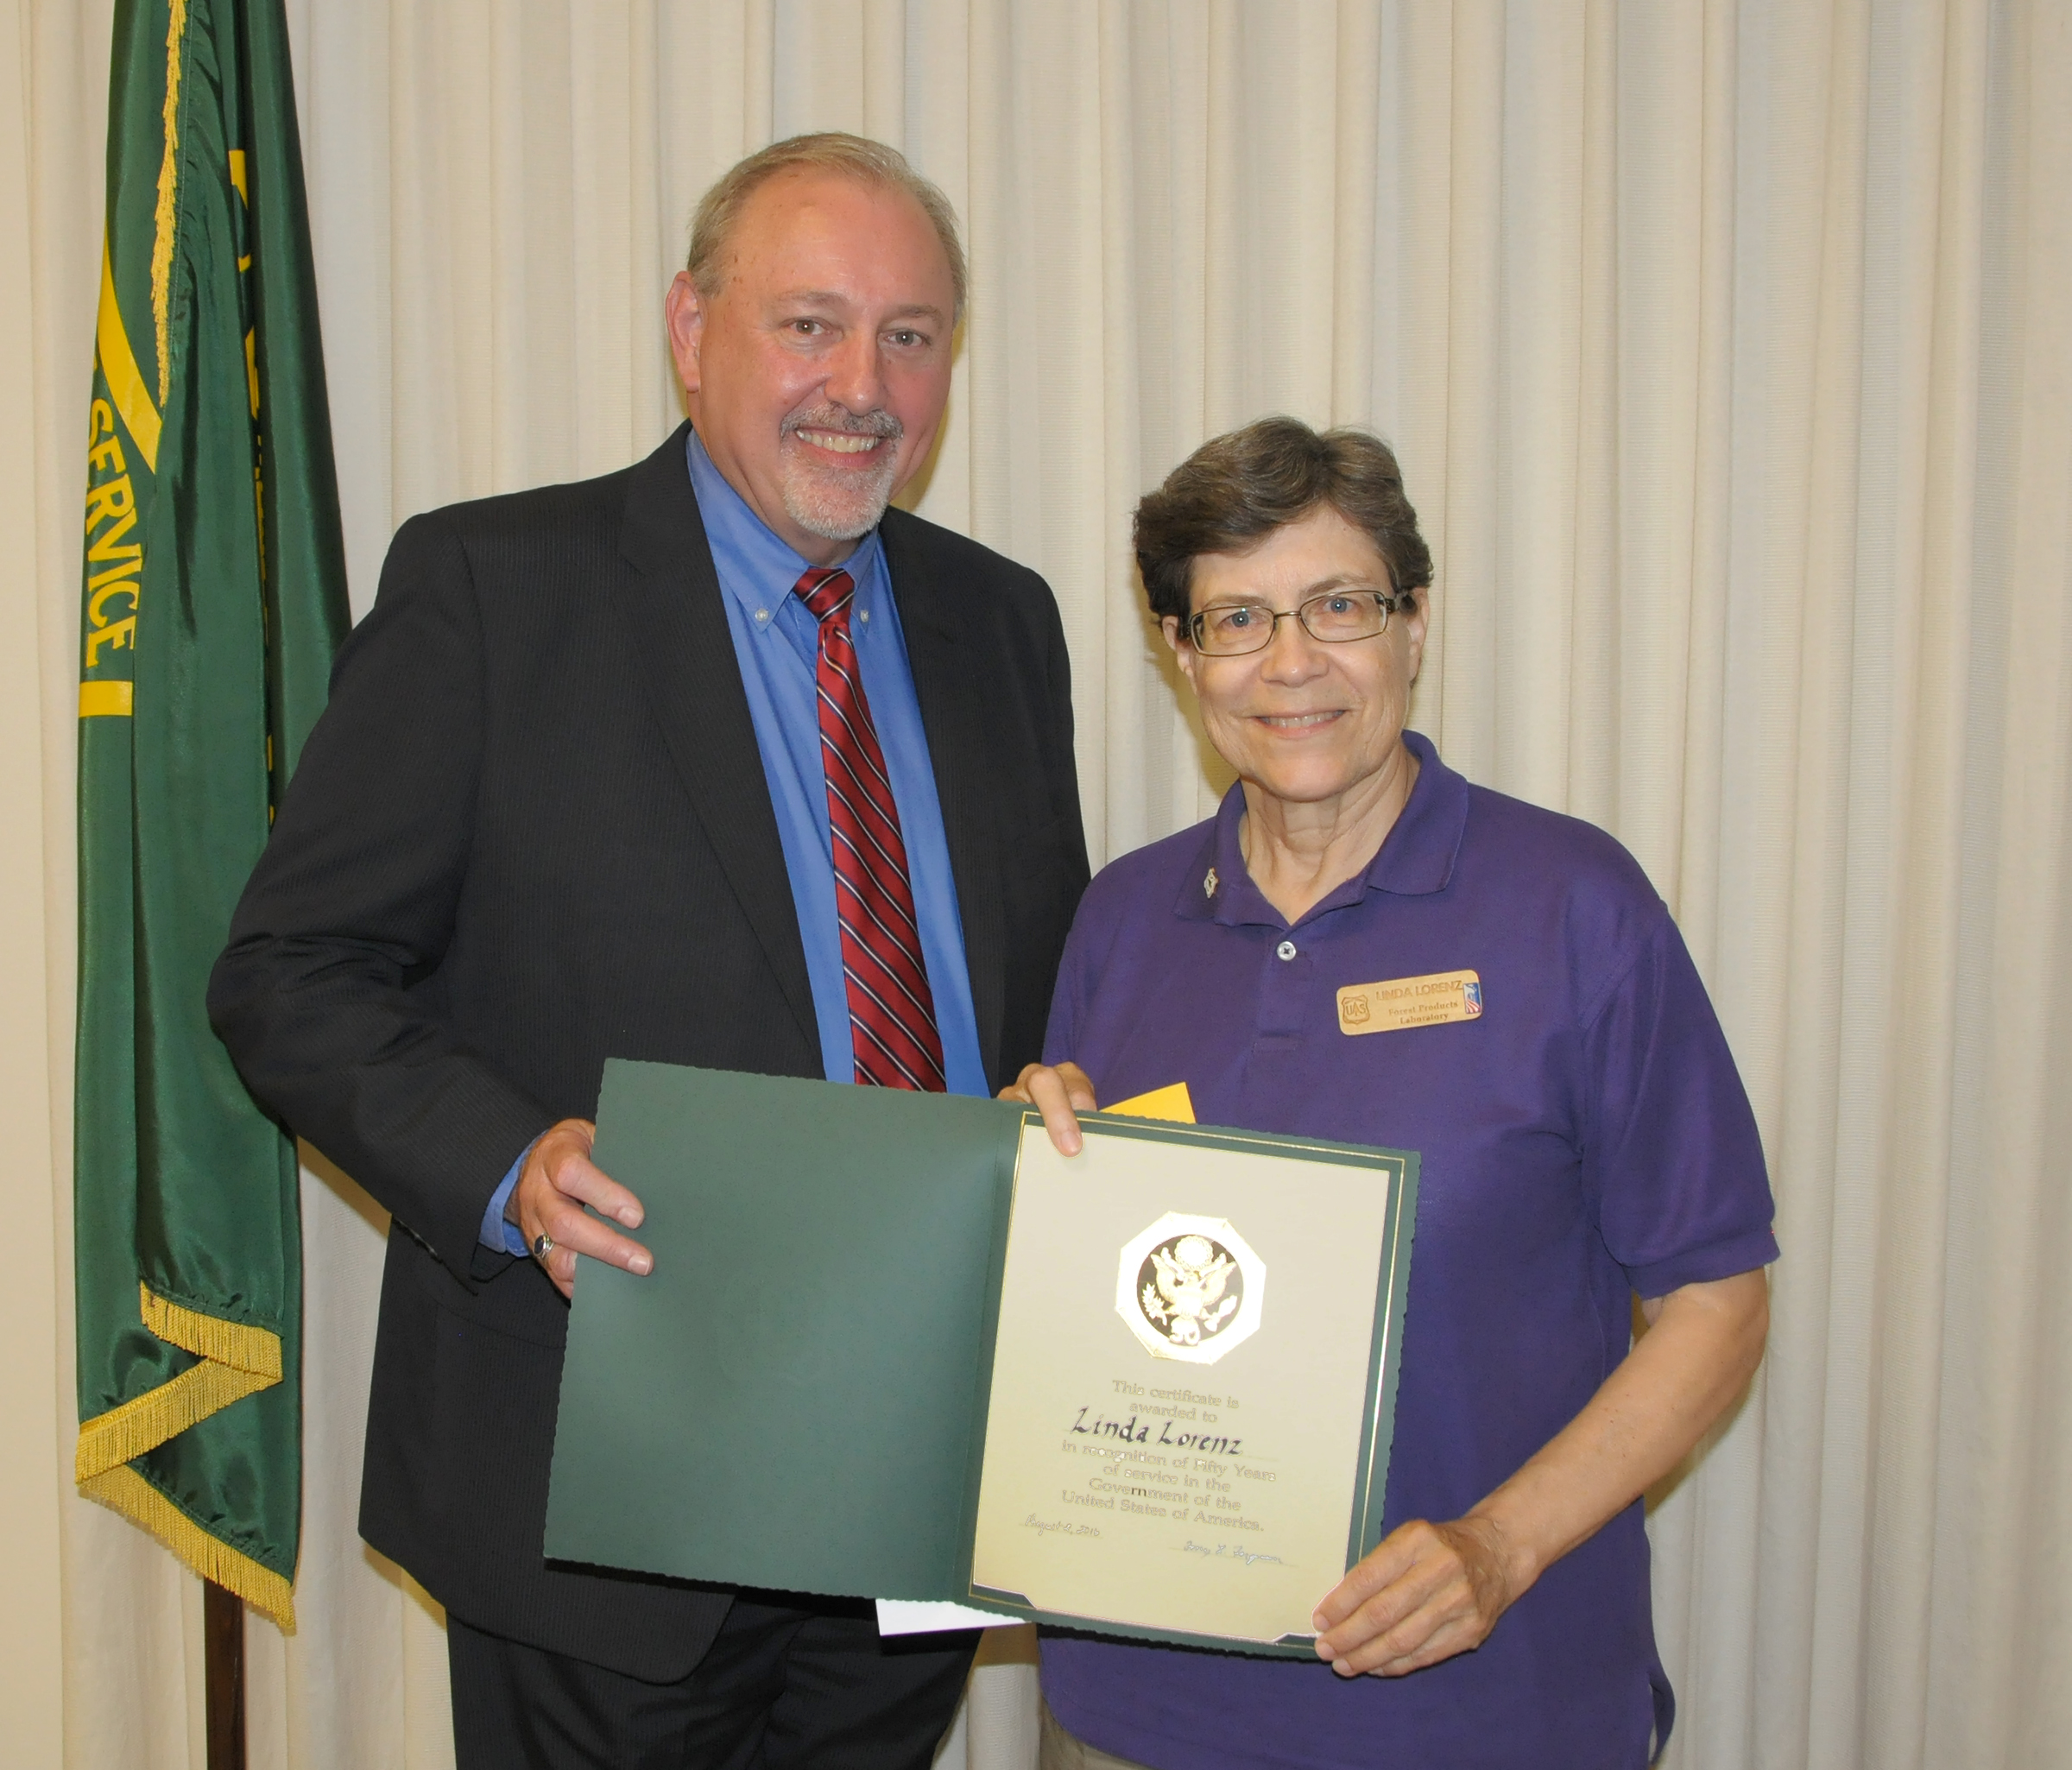 Linda Lorenz (right) accepts her 50 years of service certificate from Acting Director Tony Ferguson.